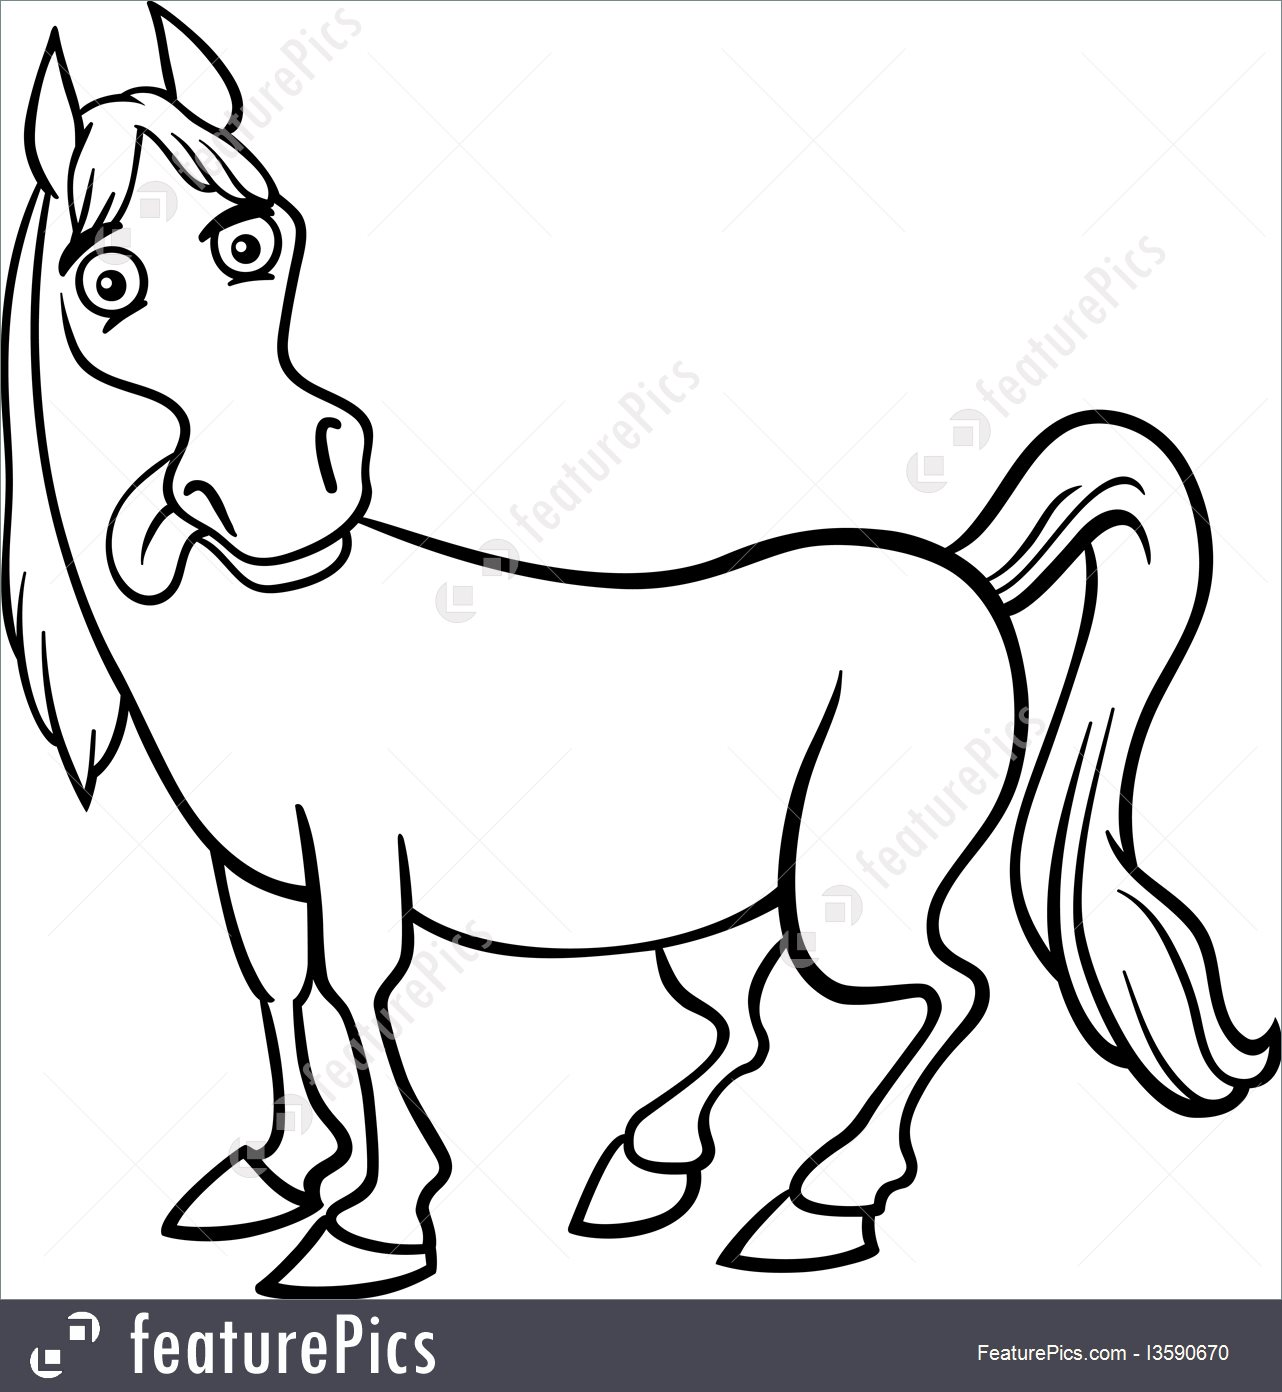 1282x1392 Farm Horse Cartoon For Coloring Book Illustration